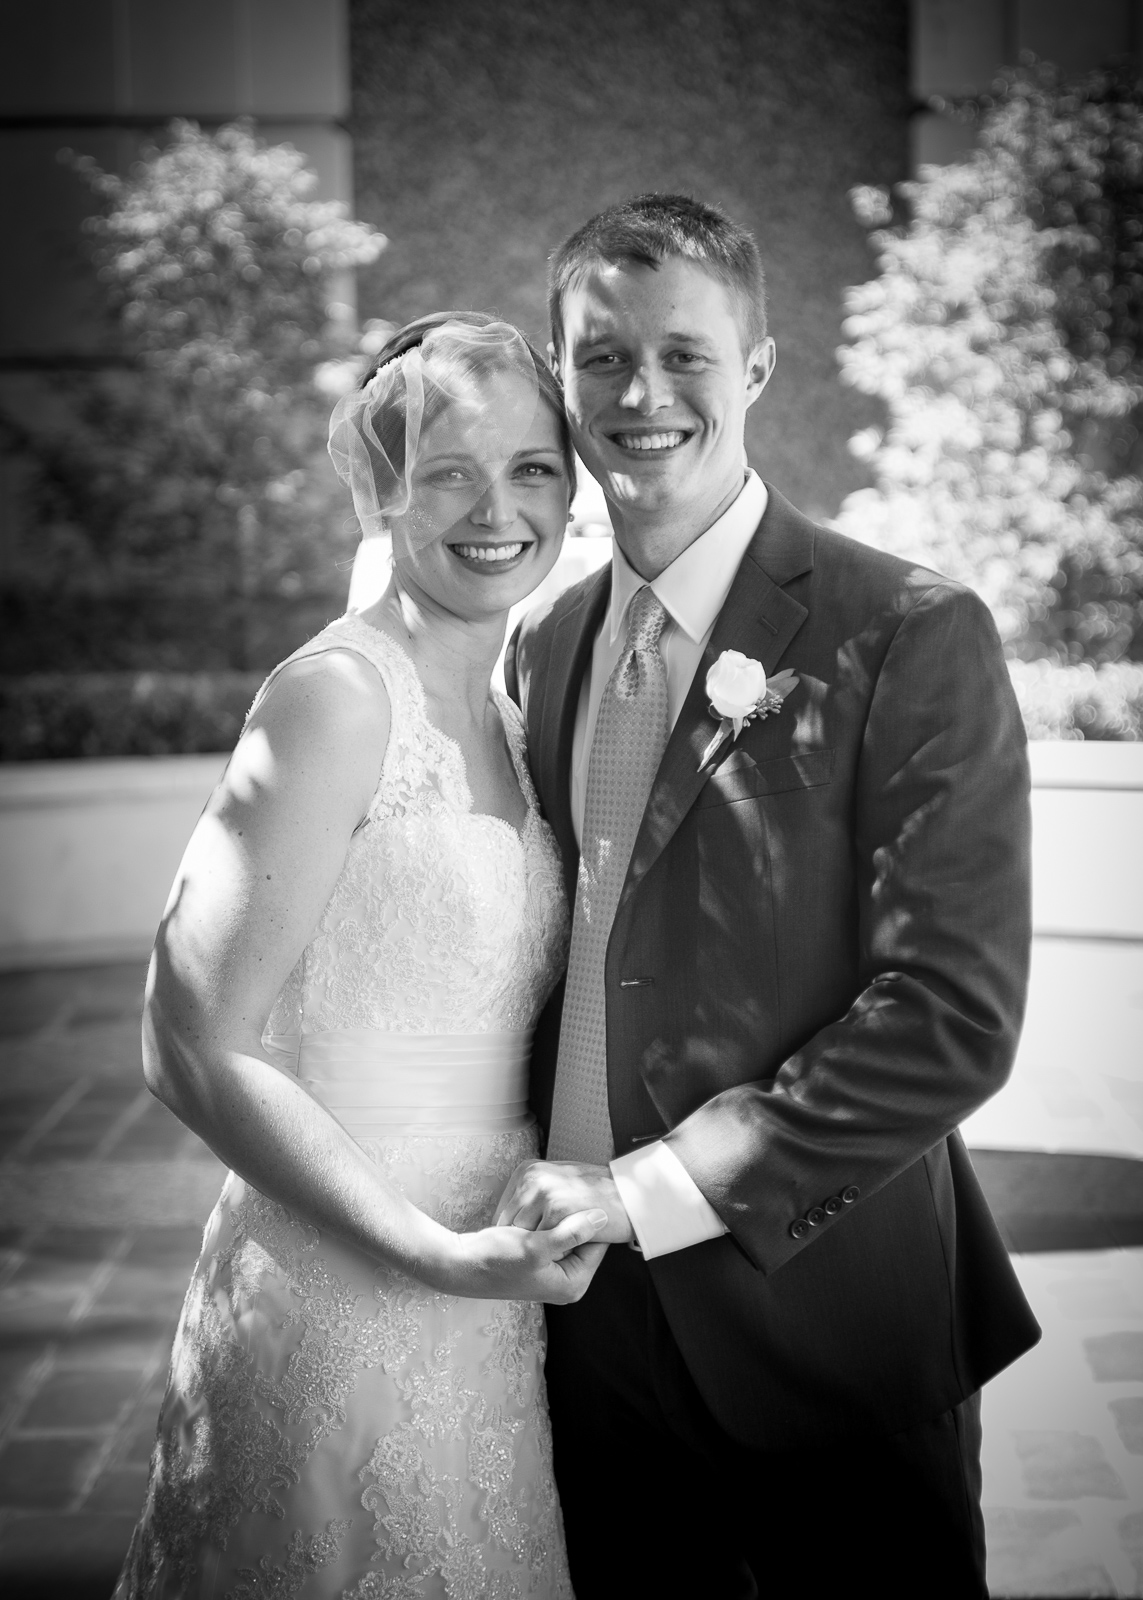 Michael-Napier-Weddings-Sprague-Stanley Wedding-Album-3 (36).jpg